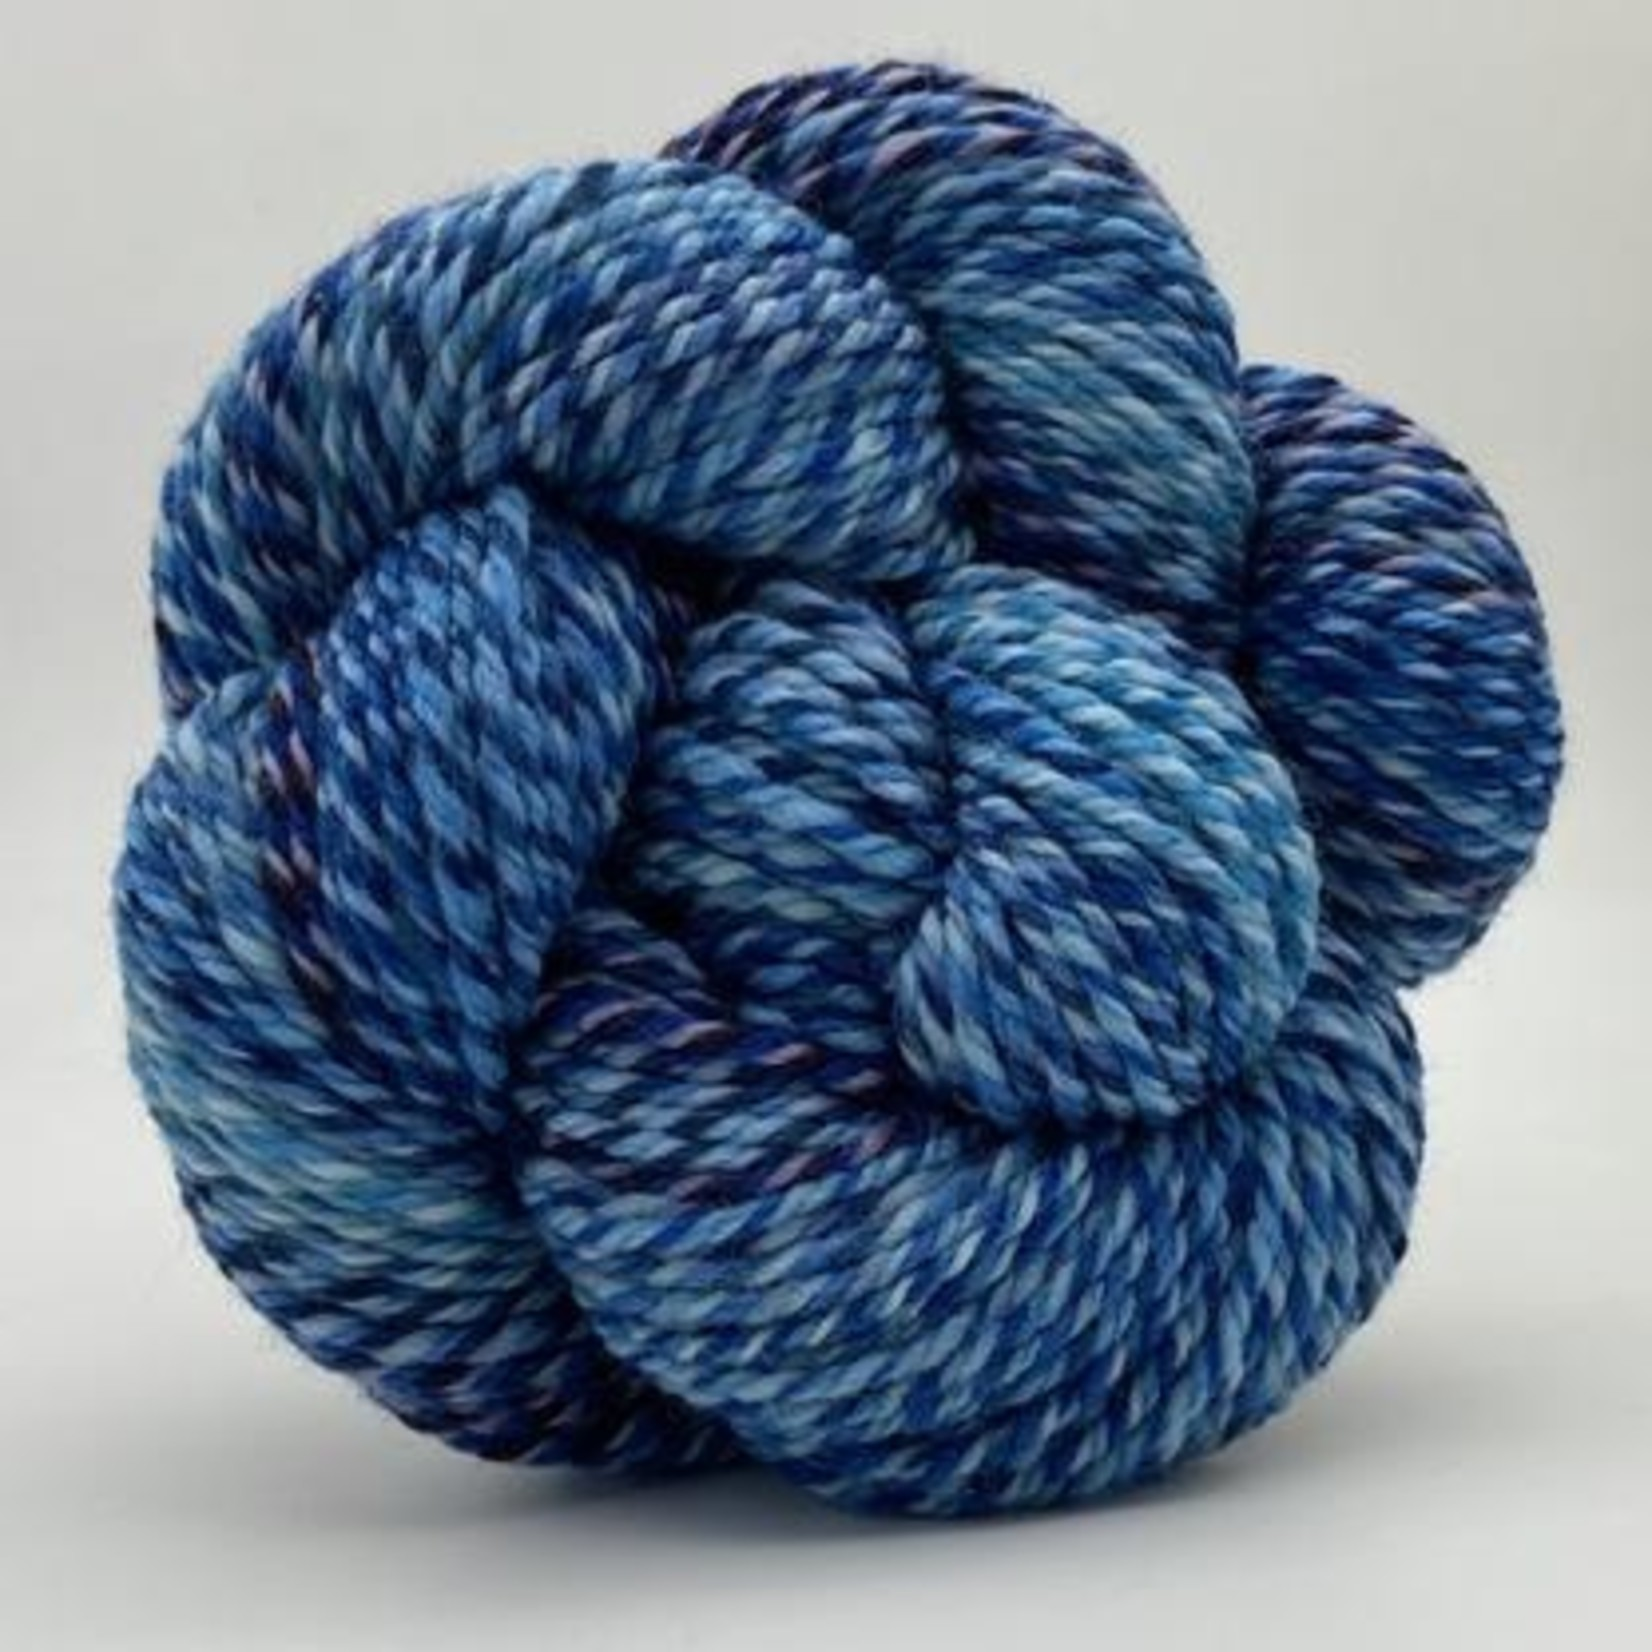 Spincycle Yarn Dyed in the Wool, Lapis